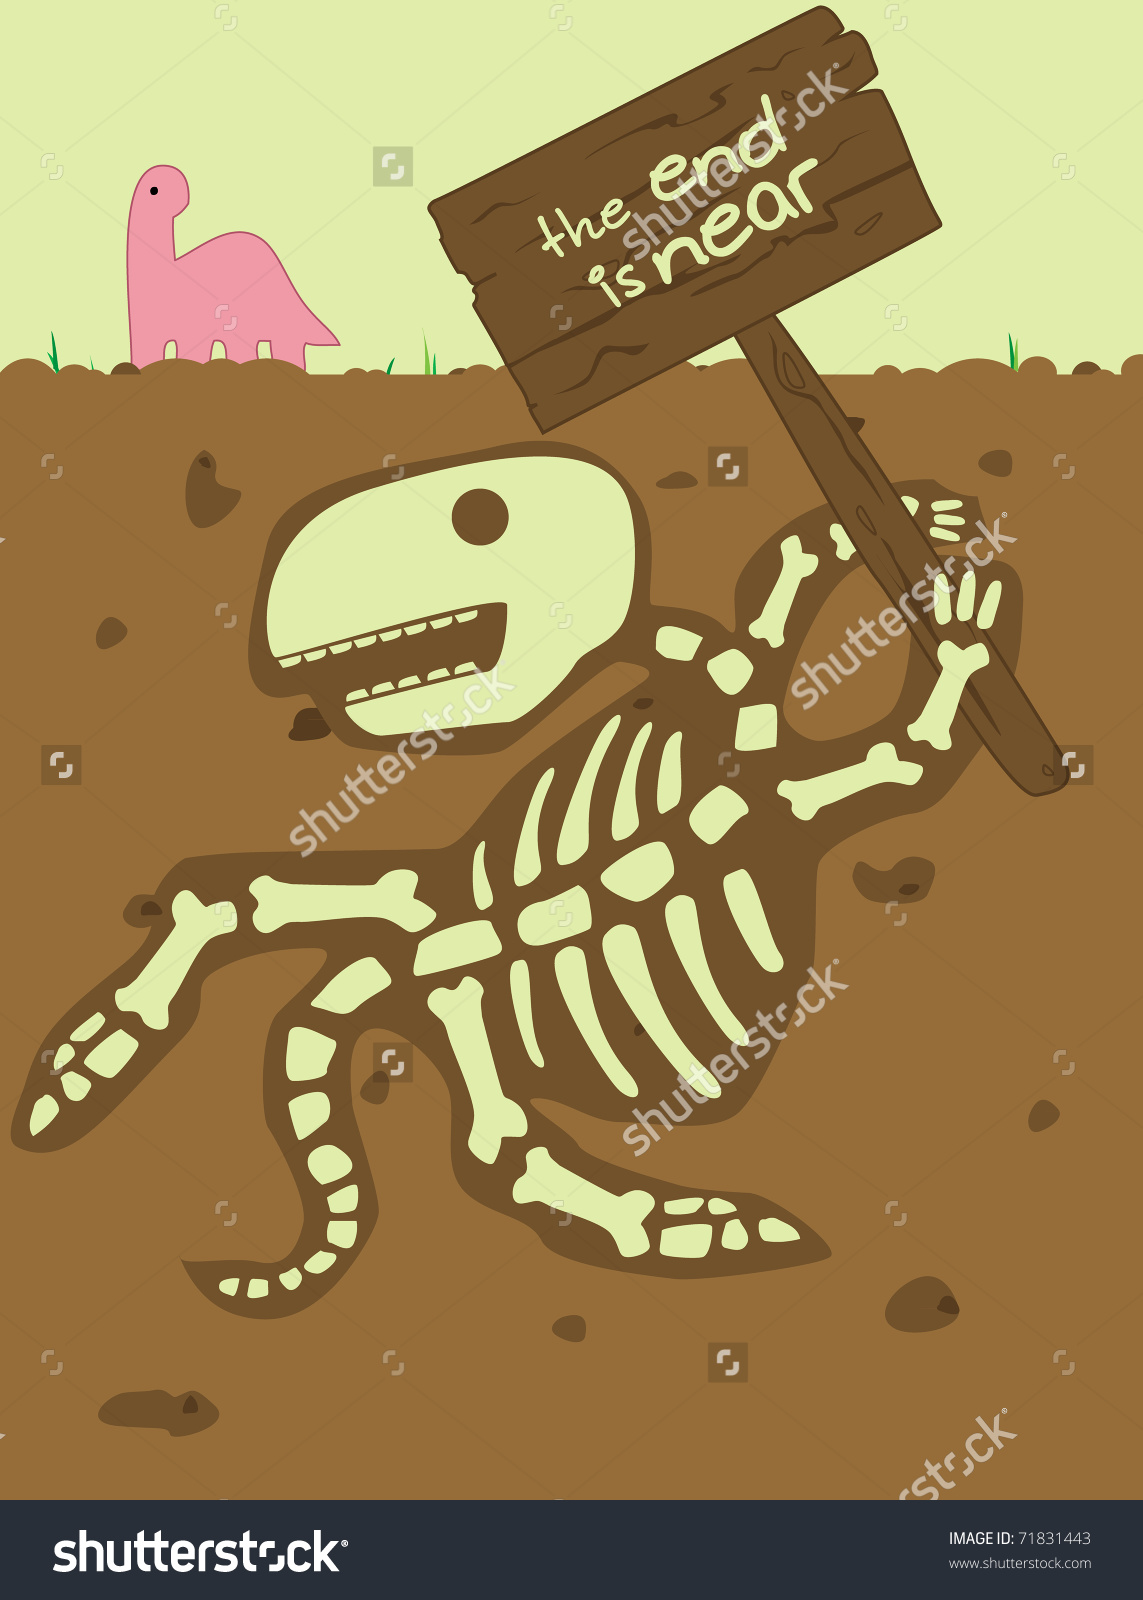 Extinct clipart #15, Download drawings